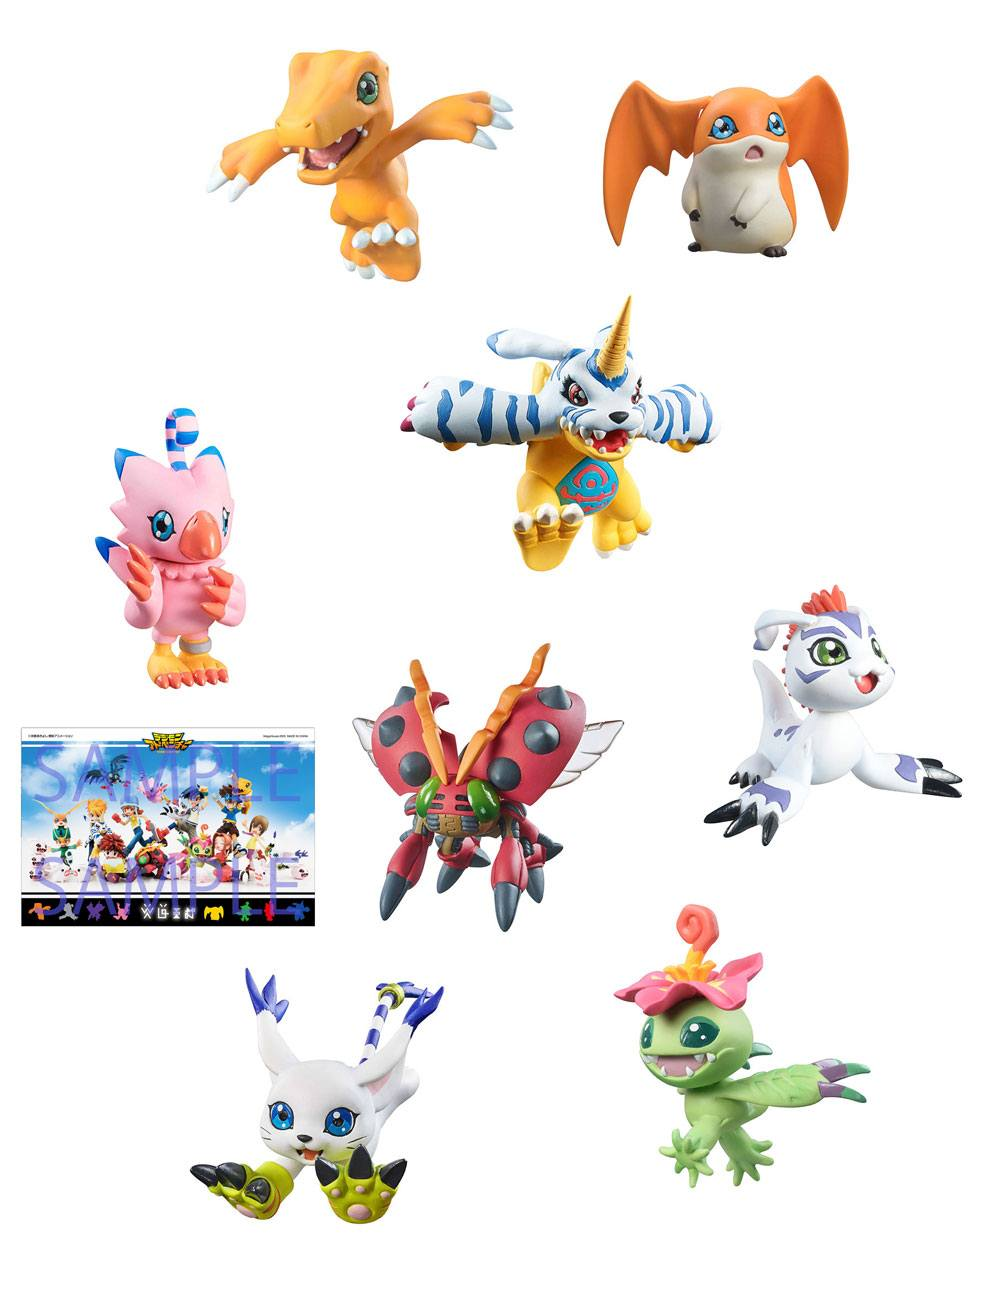 Digimon Adventure Digicolle! Series Trading Figure 8-Pack Mix Special Edition 5 cm